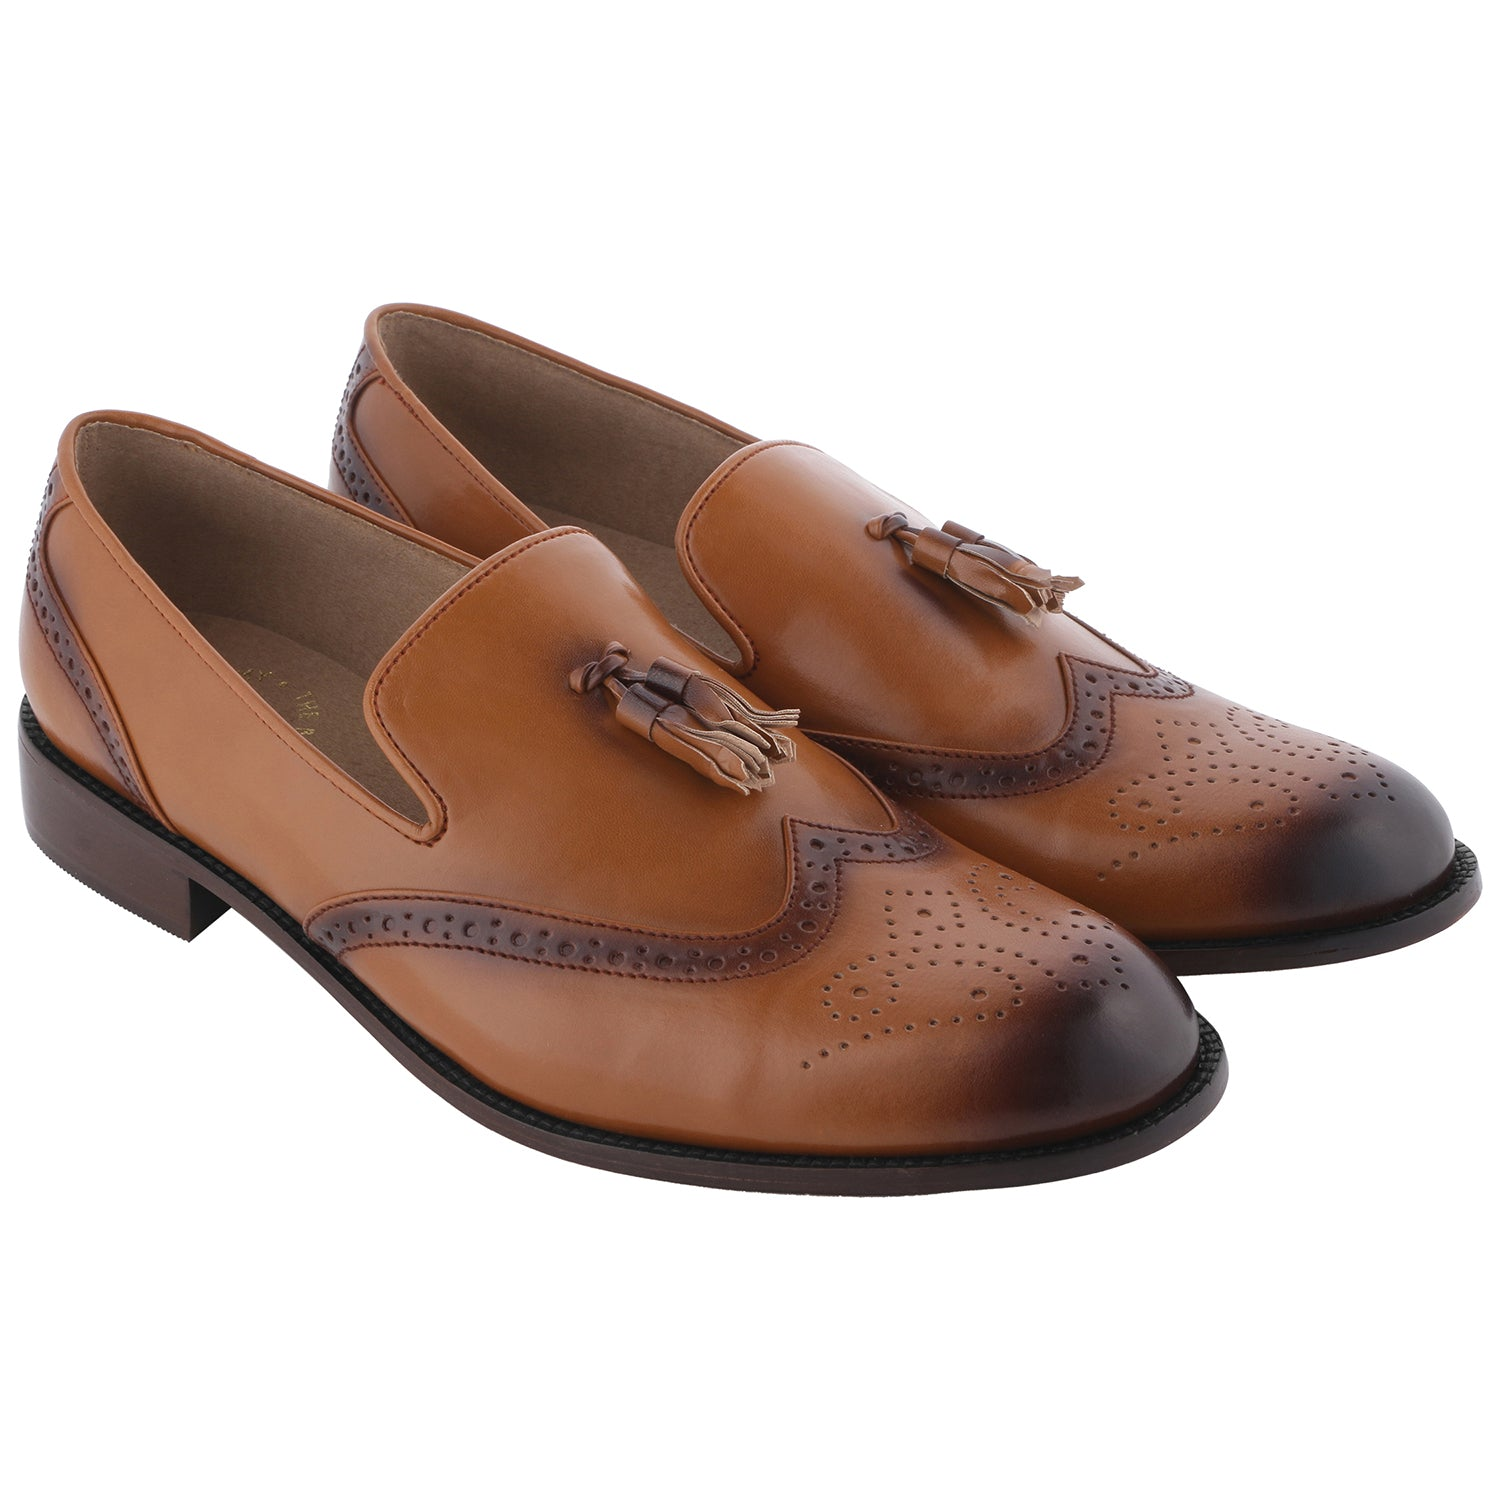 STEAFANO TAN WINGTIP BROGUES LOAFERS